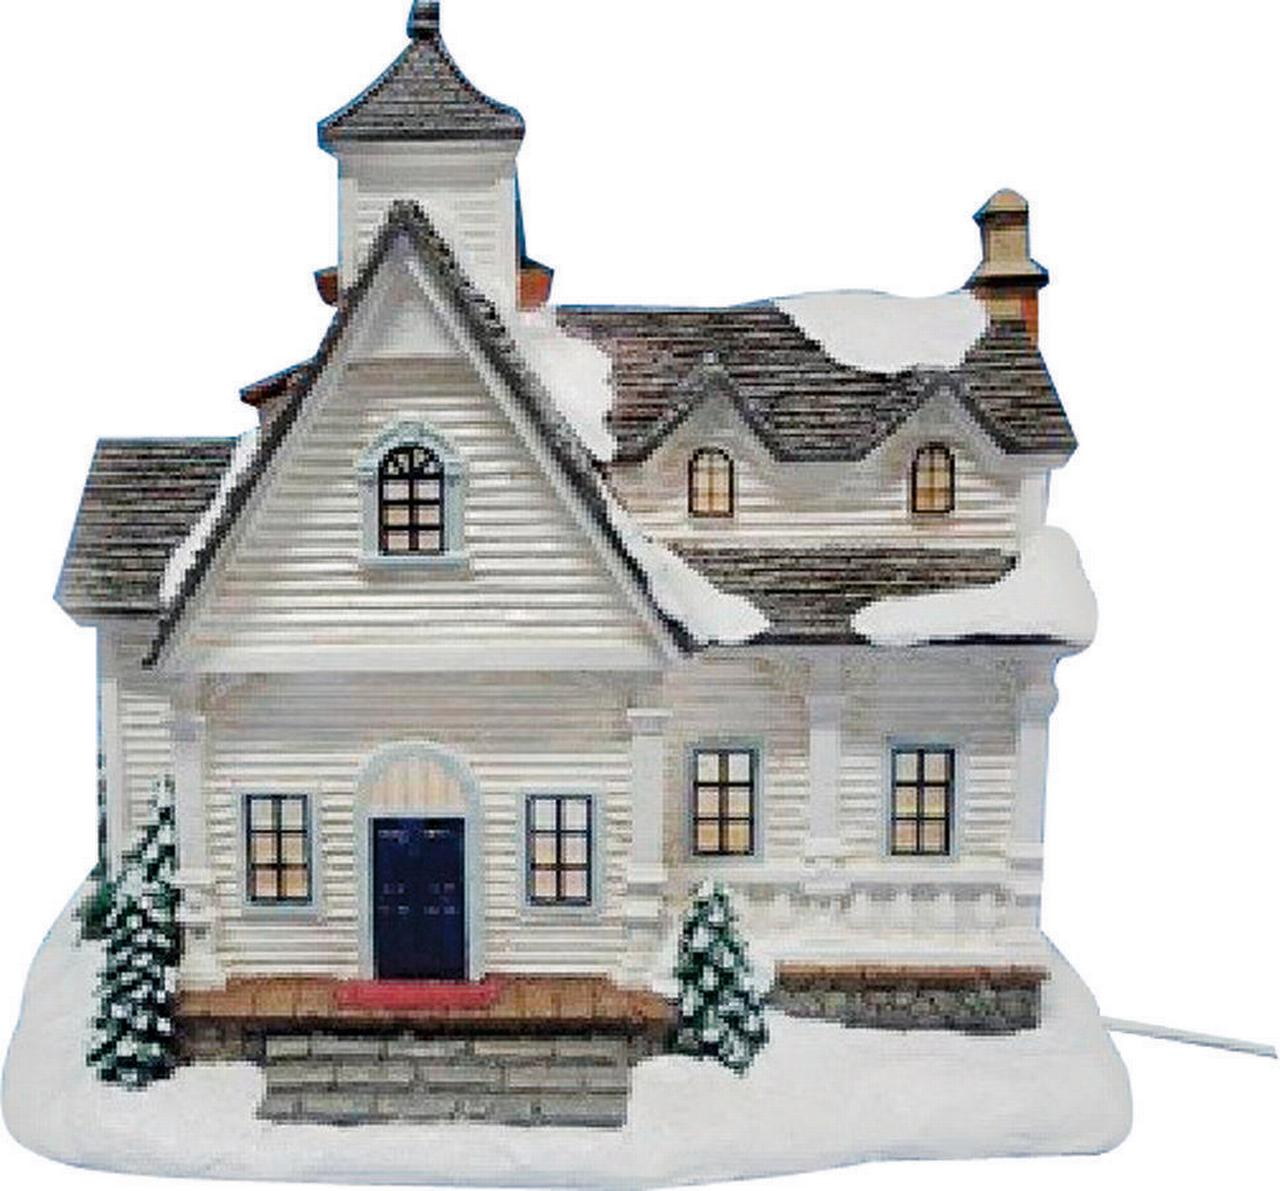 Santas Forest 29821 Christmas Village Farm House, White